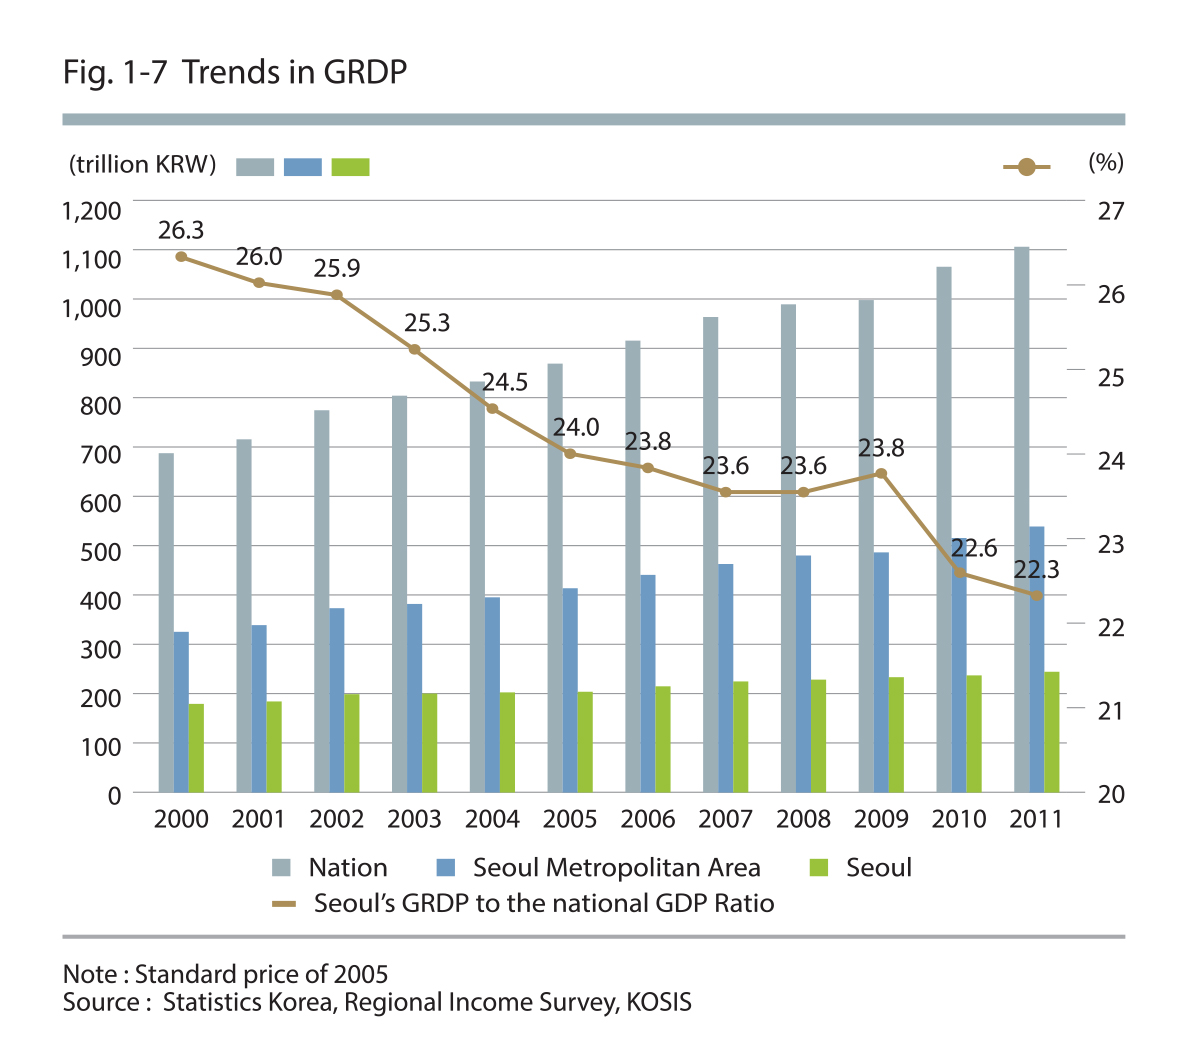 Trends in GRDP